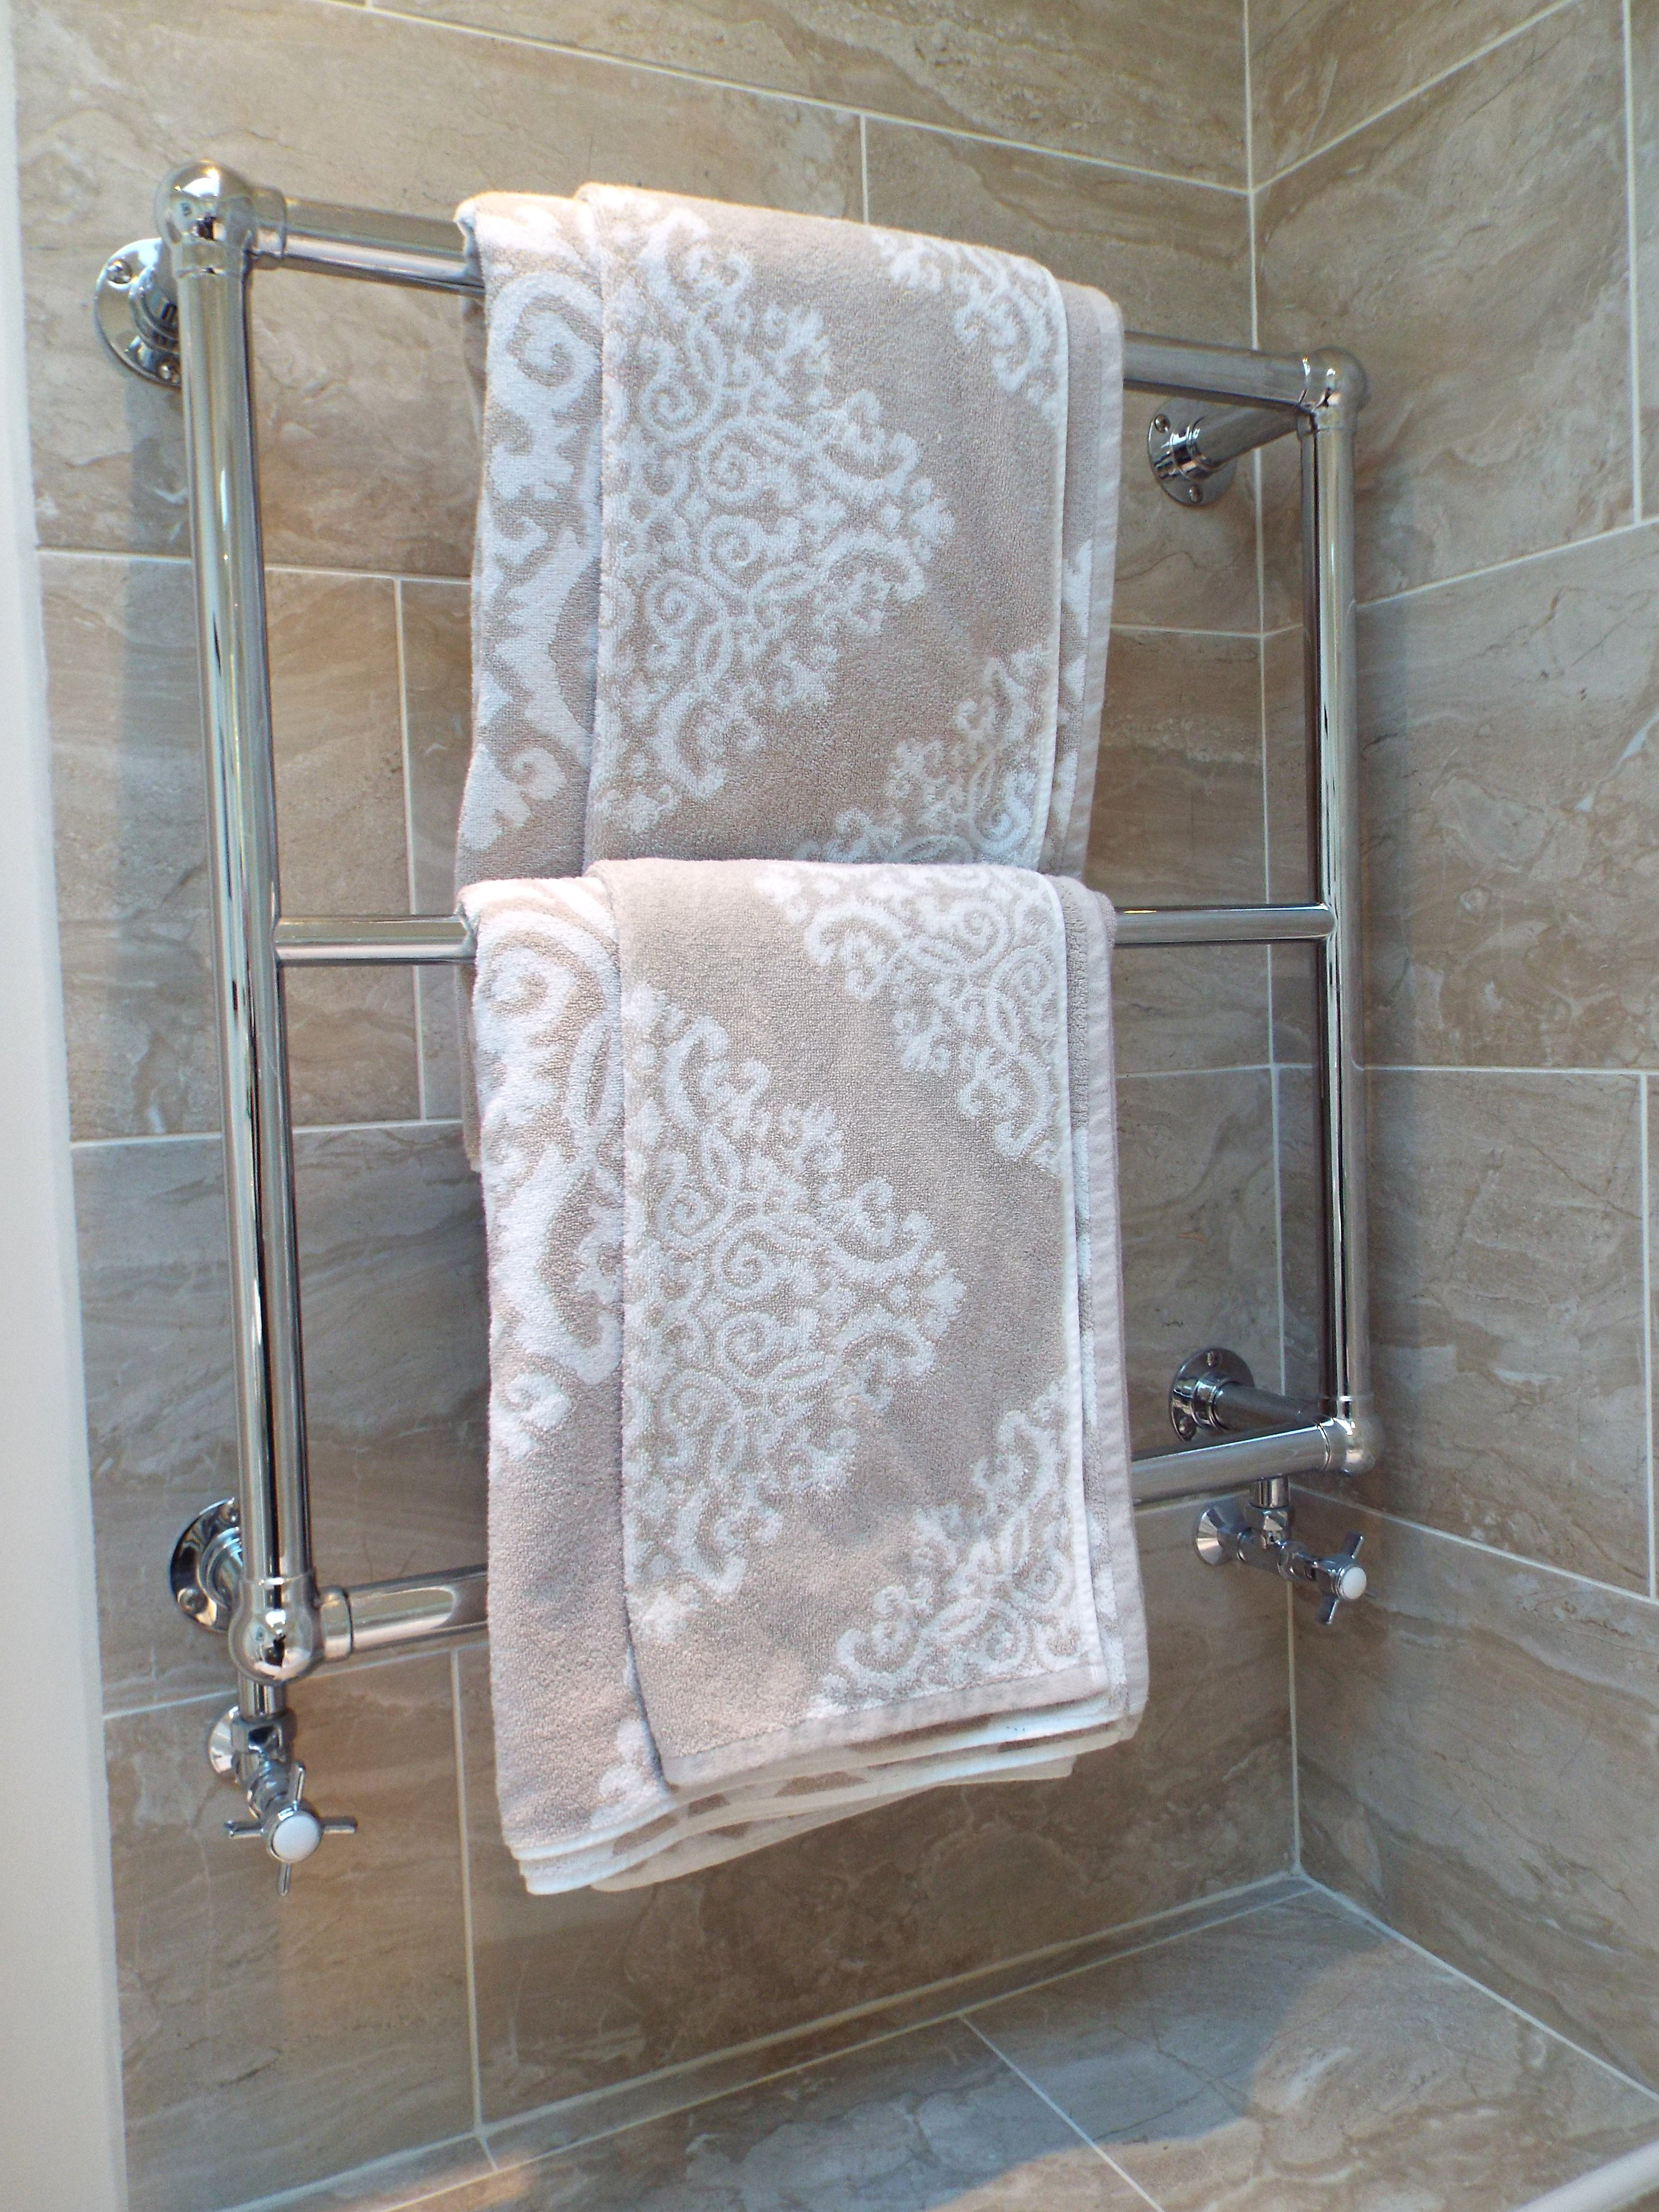 I hope you  39 ve enjoyed reading about the secret en suite  please comment and share your own penny pinching bathroom tips  If you like what you  39 ve seen. Janet Whitehead   My Lovely Money Pit